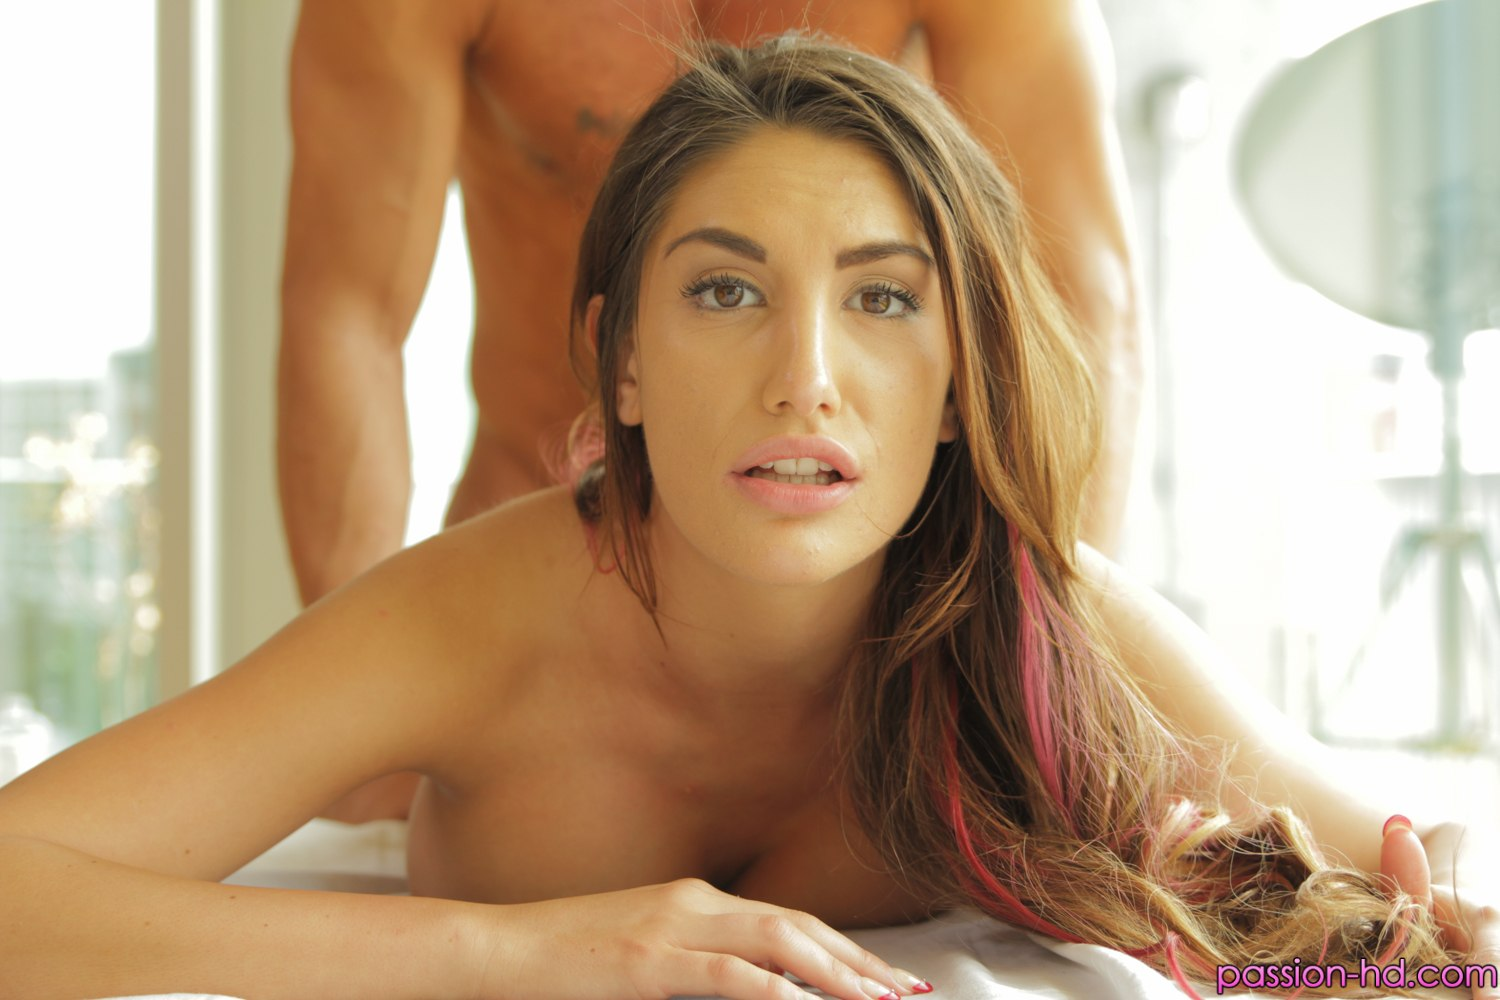 Passion HD August Ames in Full Body Rub Down